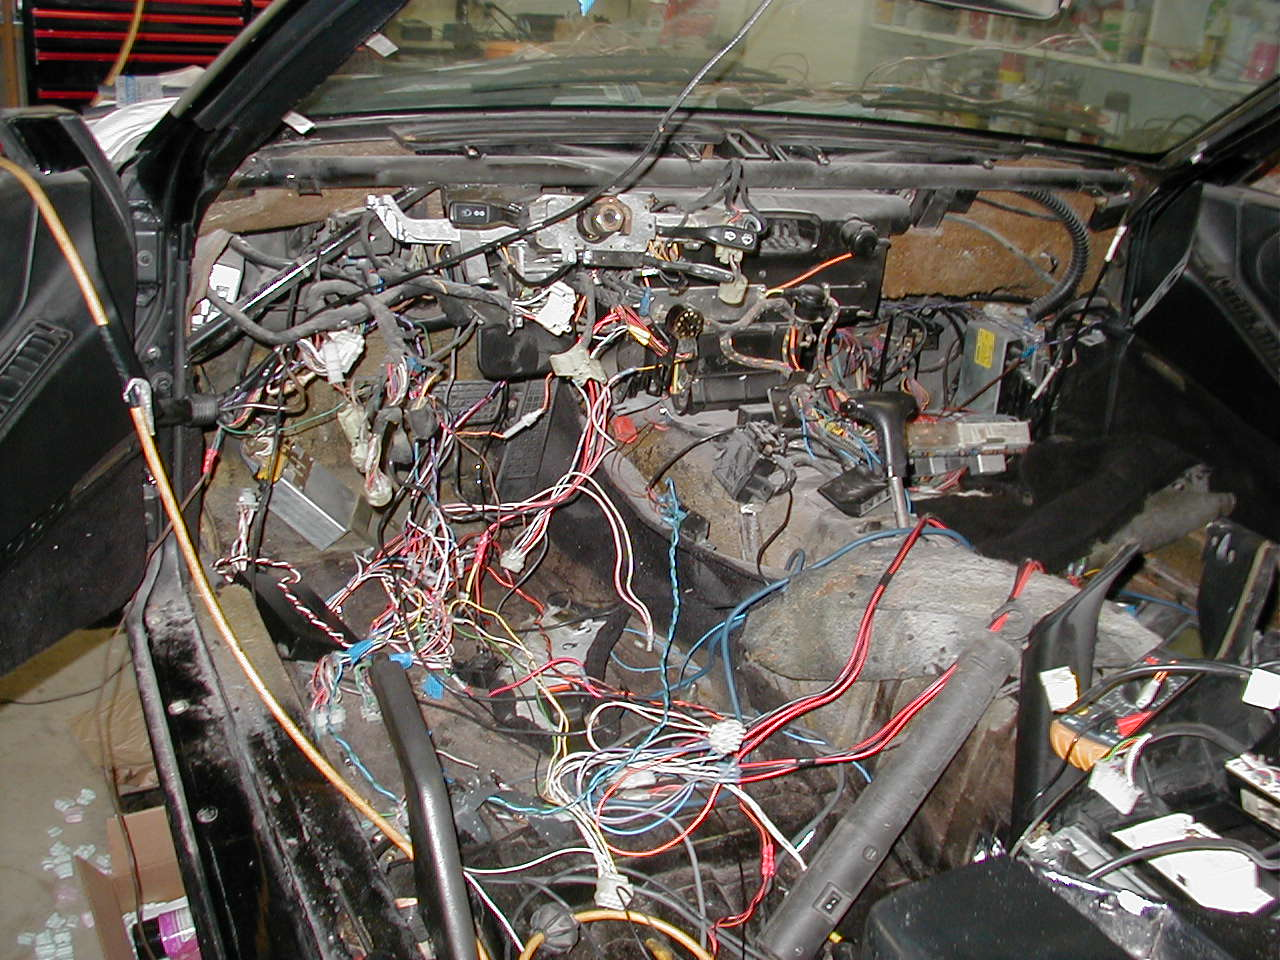 Ignition Switch Wiring What Color Goes To Rennlist Porsche 911 1982 Diagram Get Free Image About Sorry Couldnt Resist Posting One Of My Favorite 928 Pics